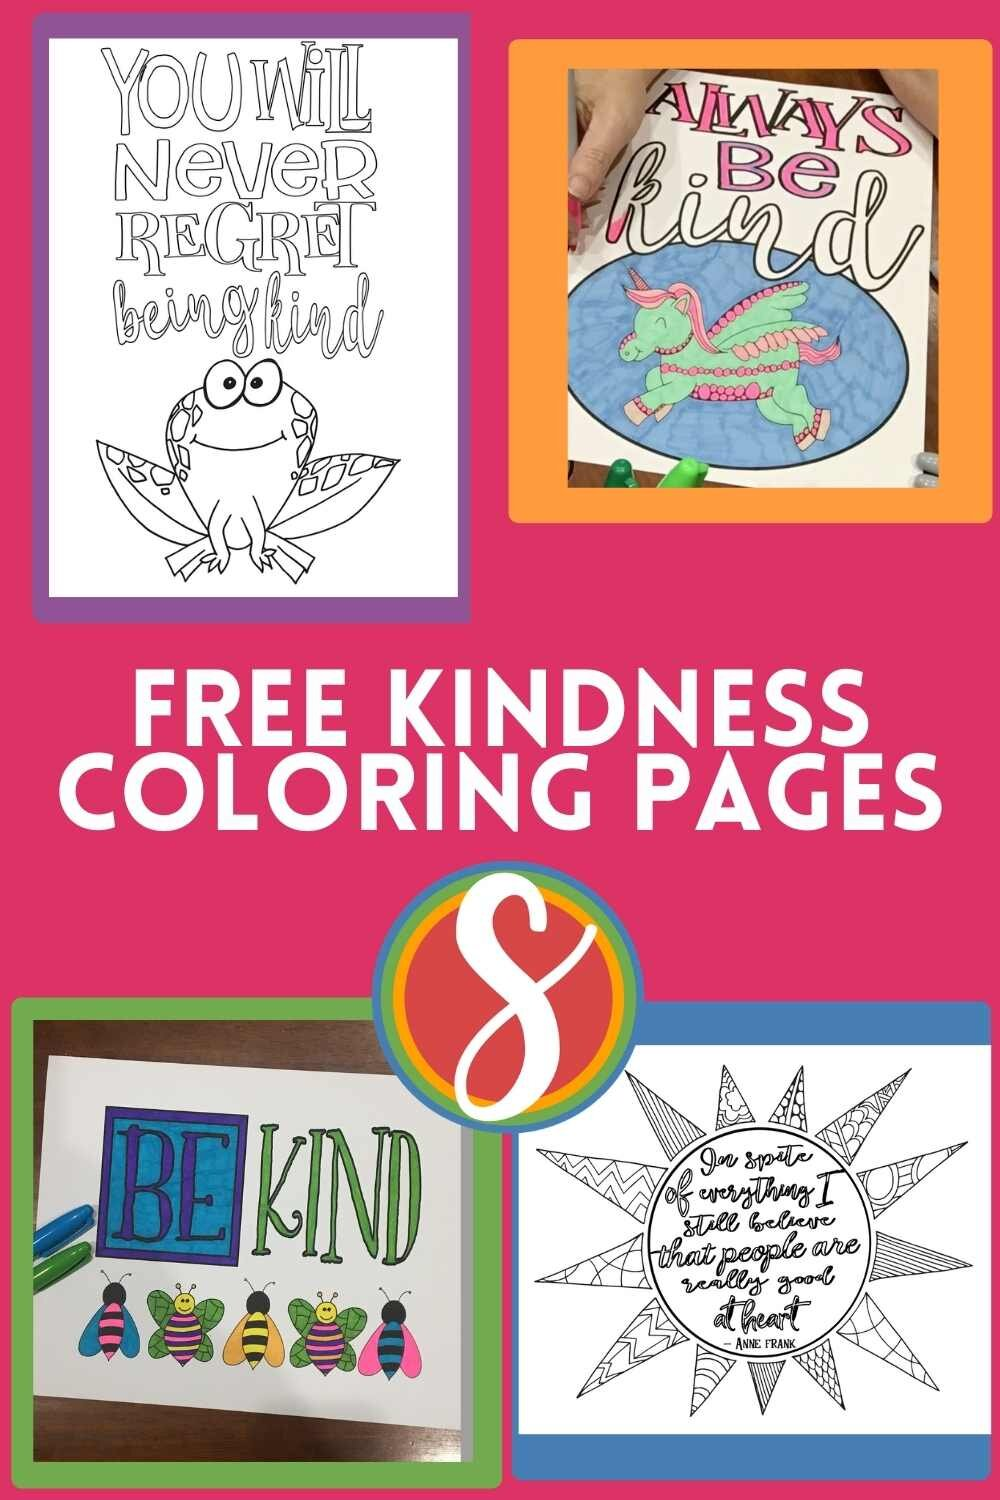 free kindness coloring pages.jpg